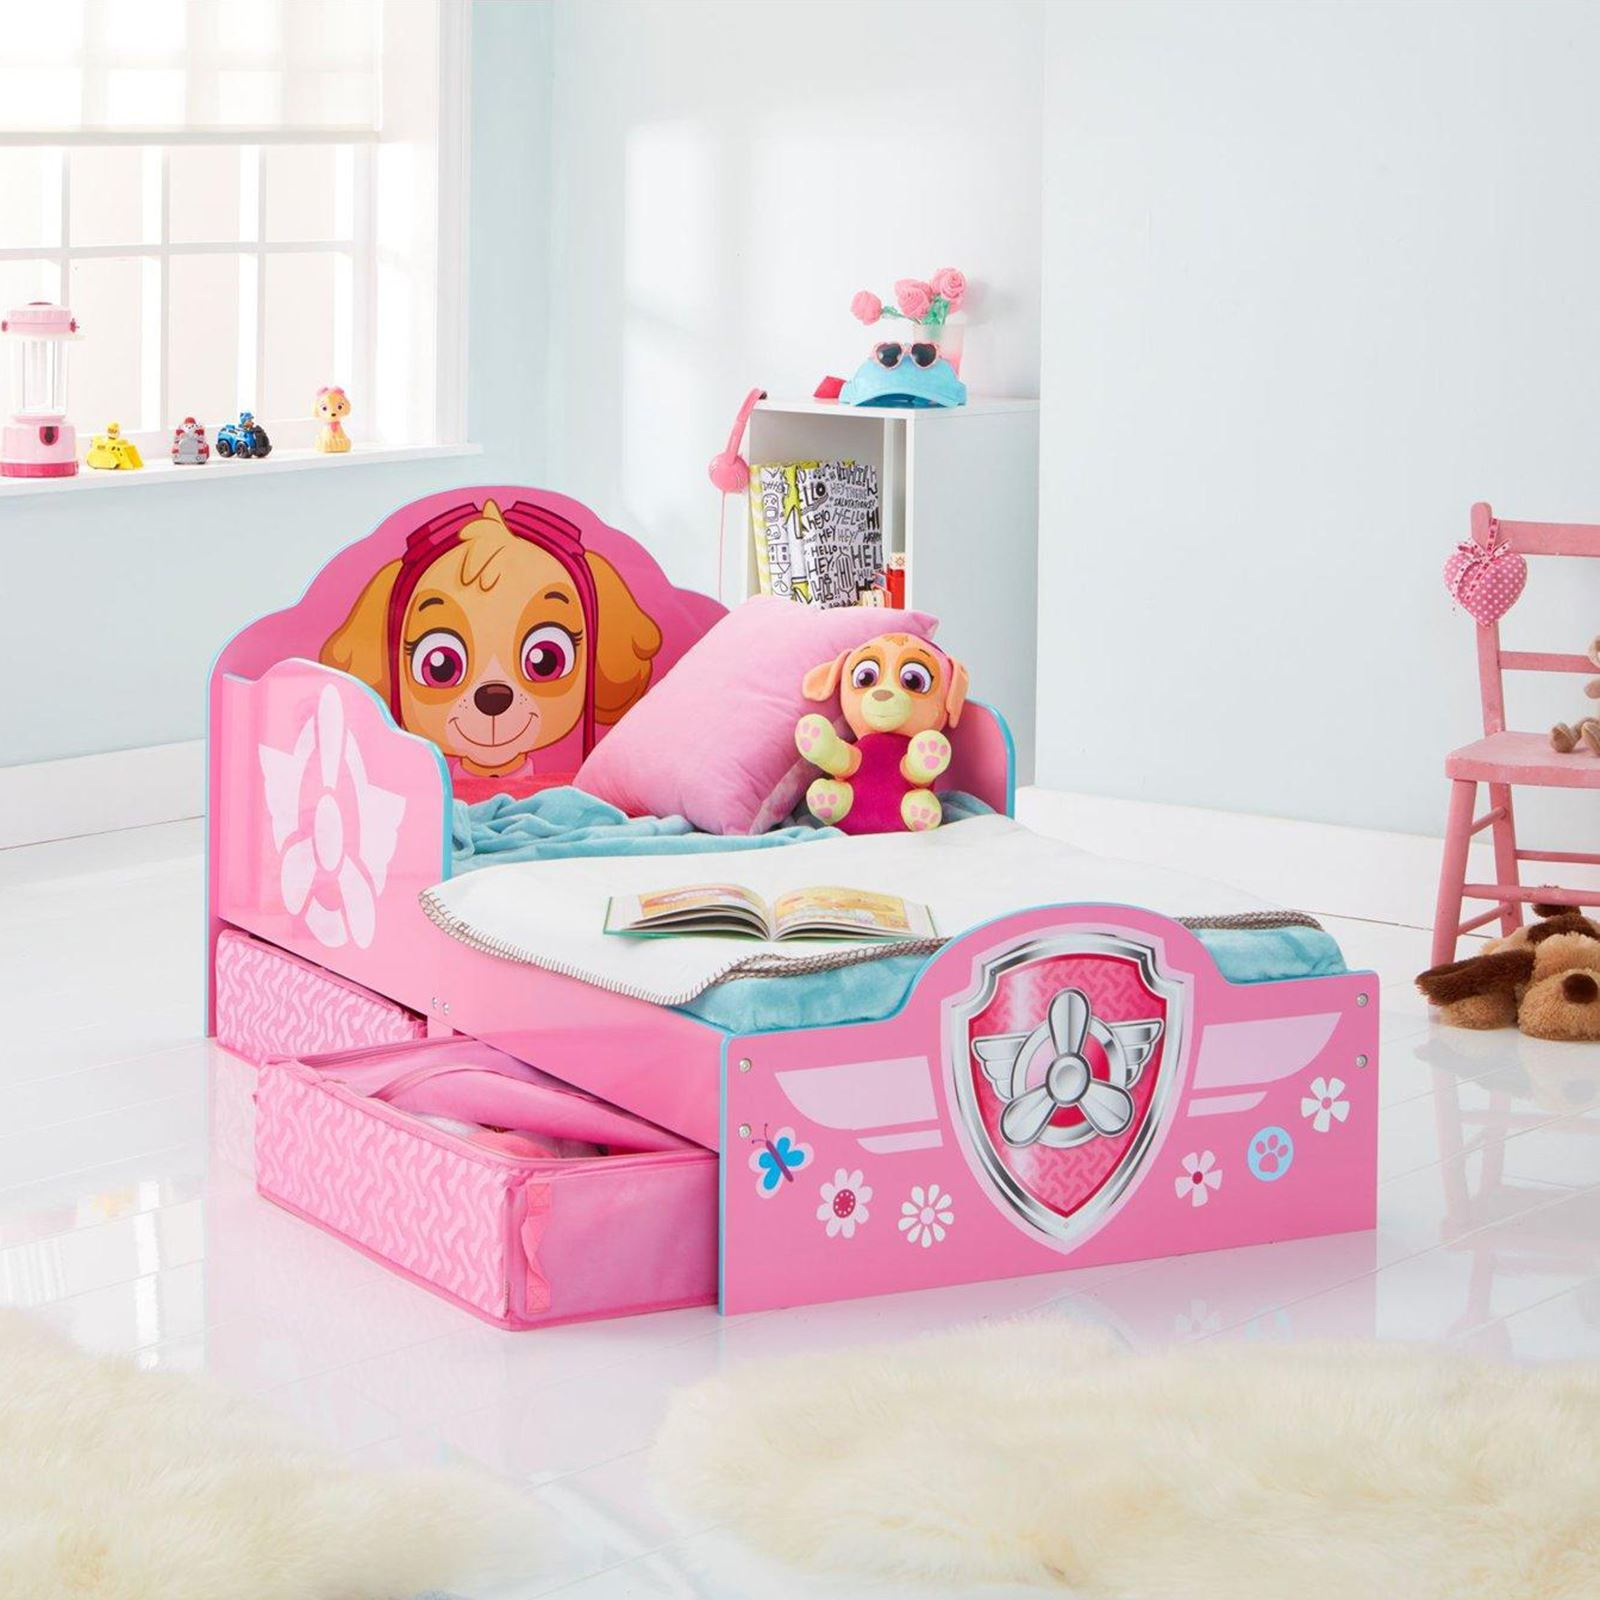 disney kleinkind bett mit lager matratze autos peppa mini eisk nigin mehr ebay. Black Bedroom Furniture Sets. Home Design Ideas